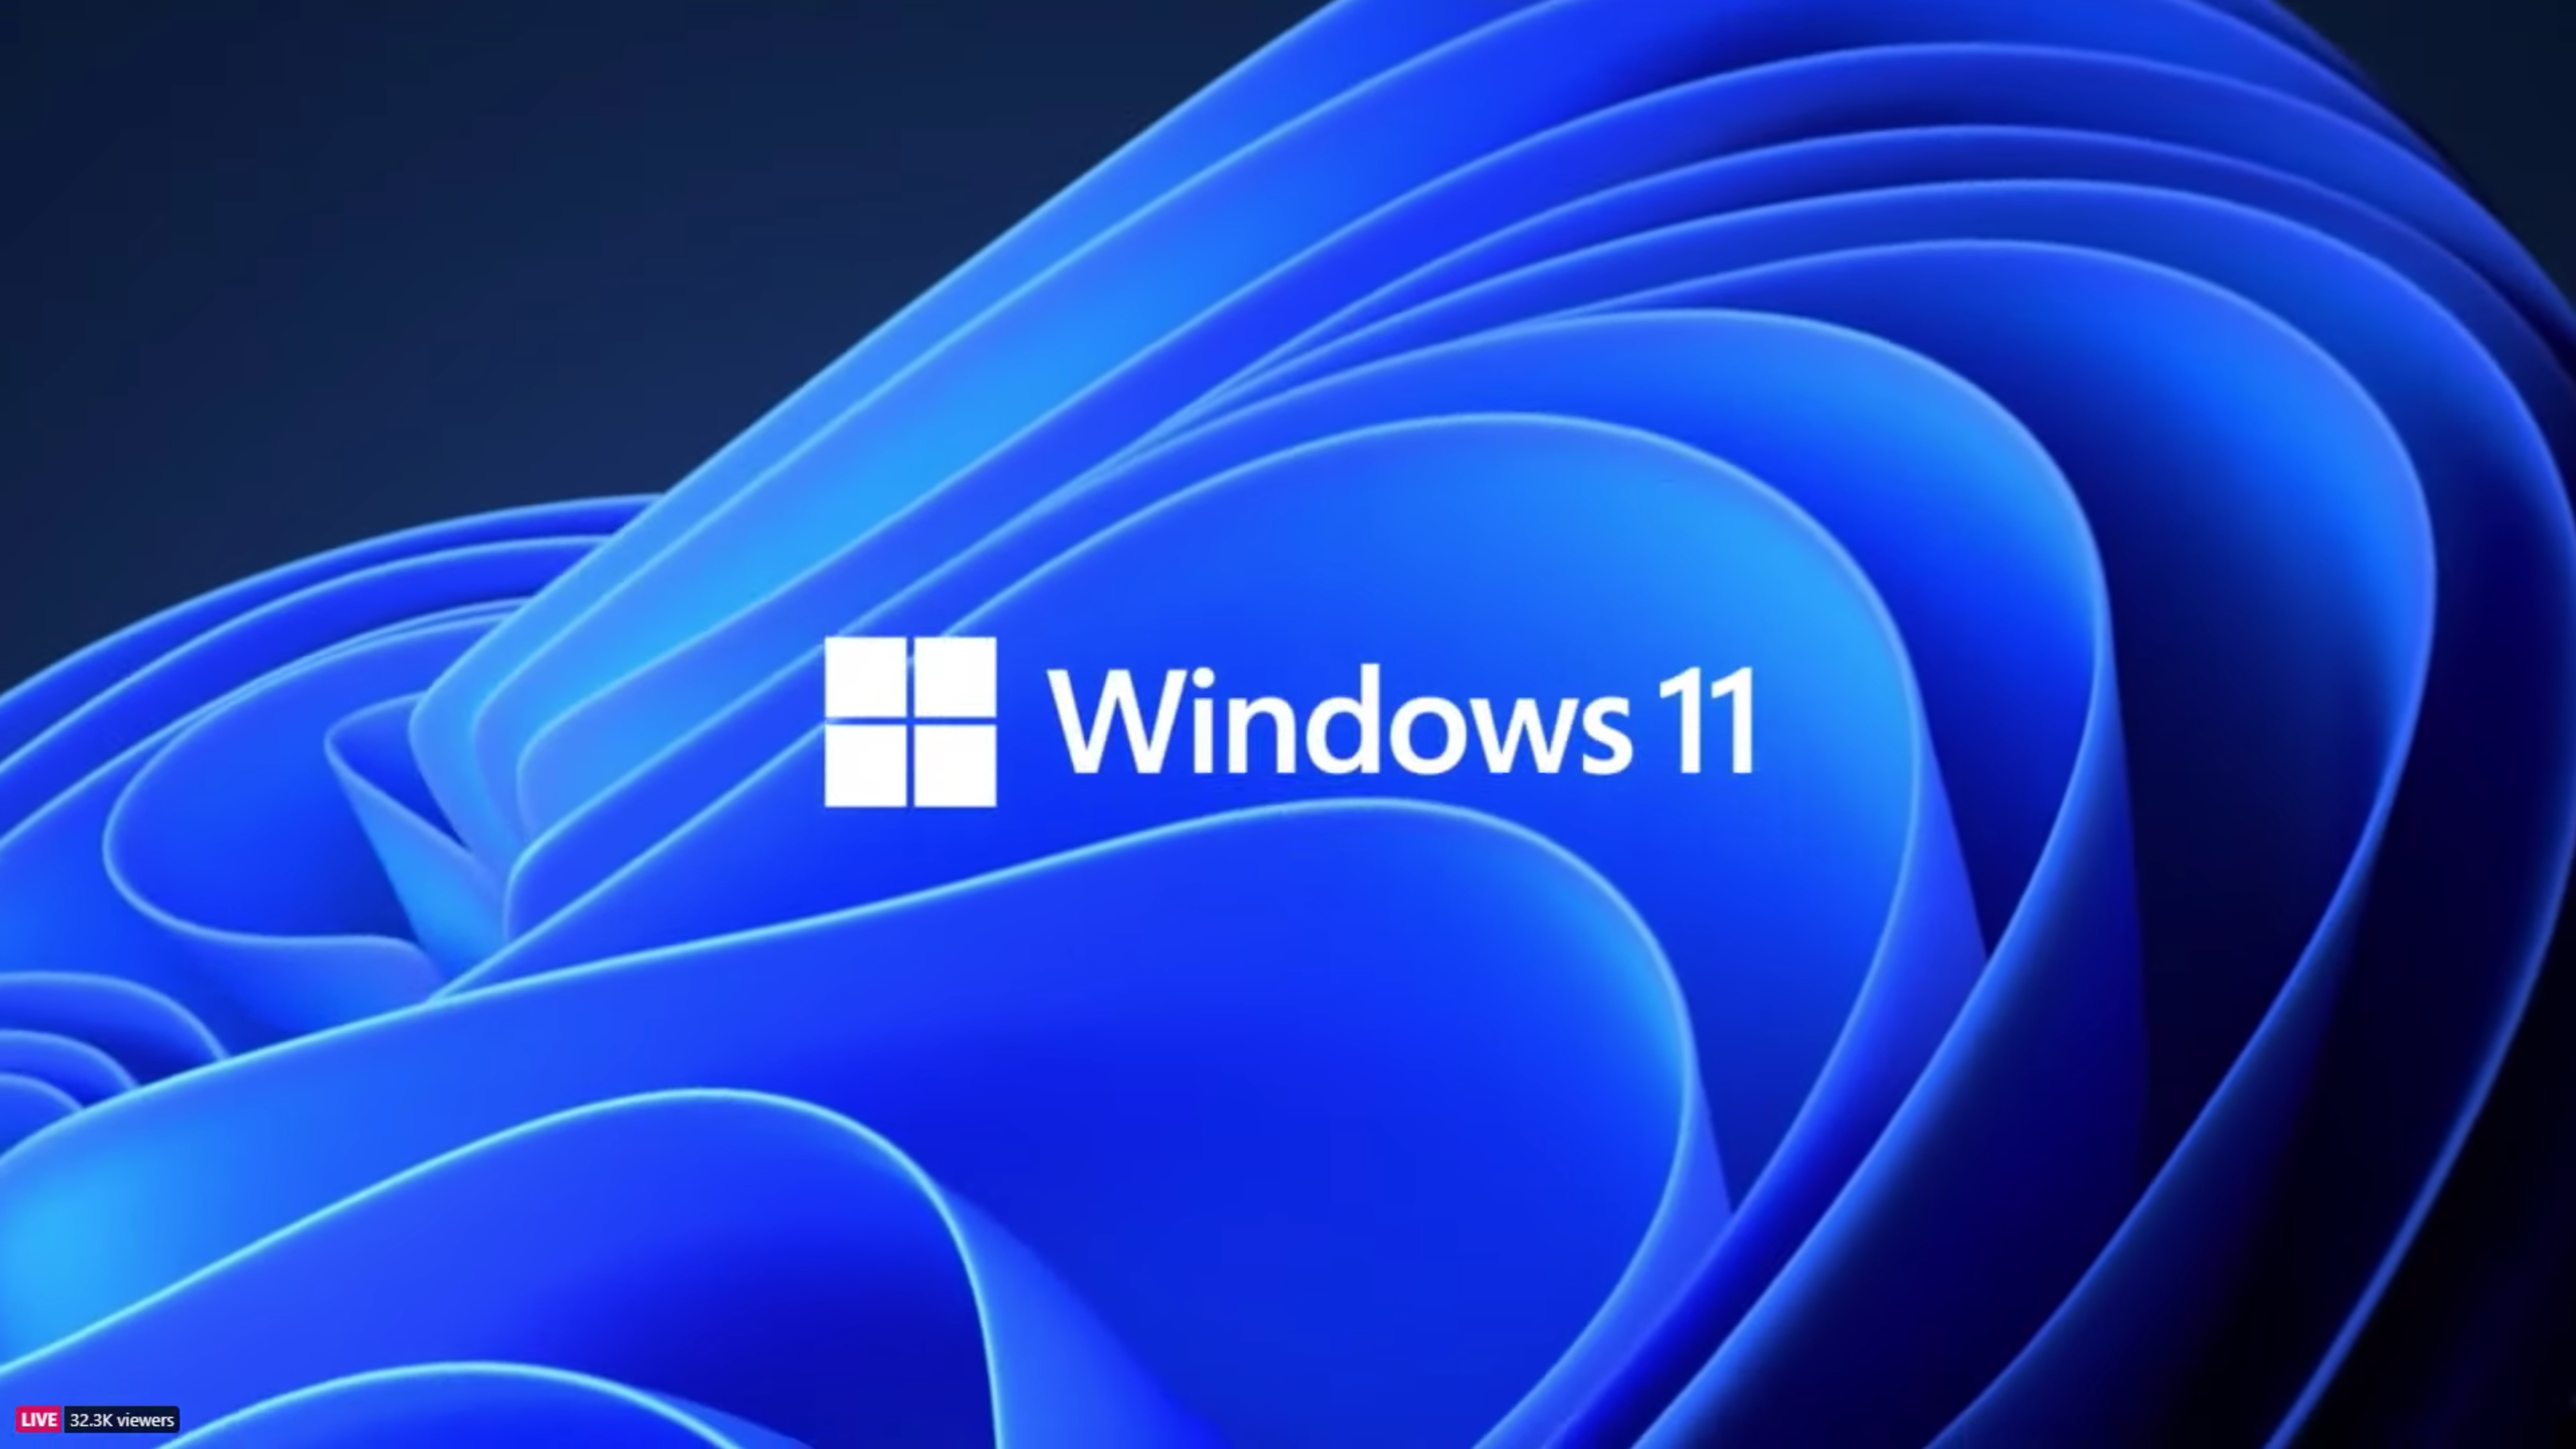 Microsoft will require an Internet connection and account for activate Windows 11 house